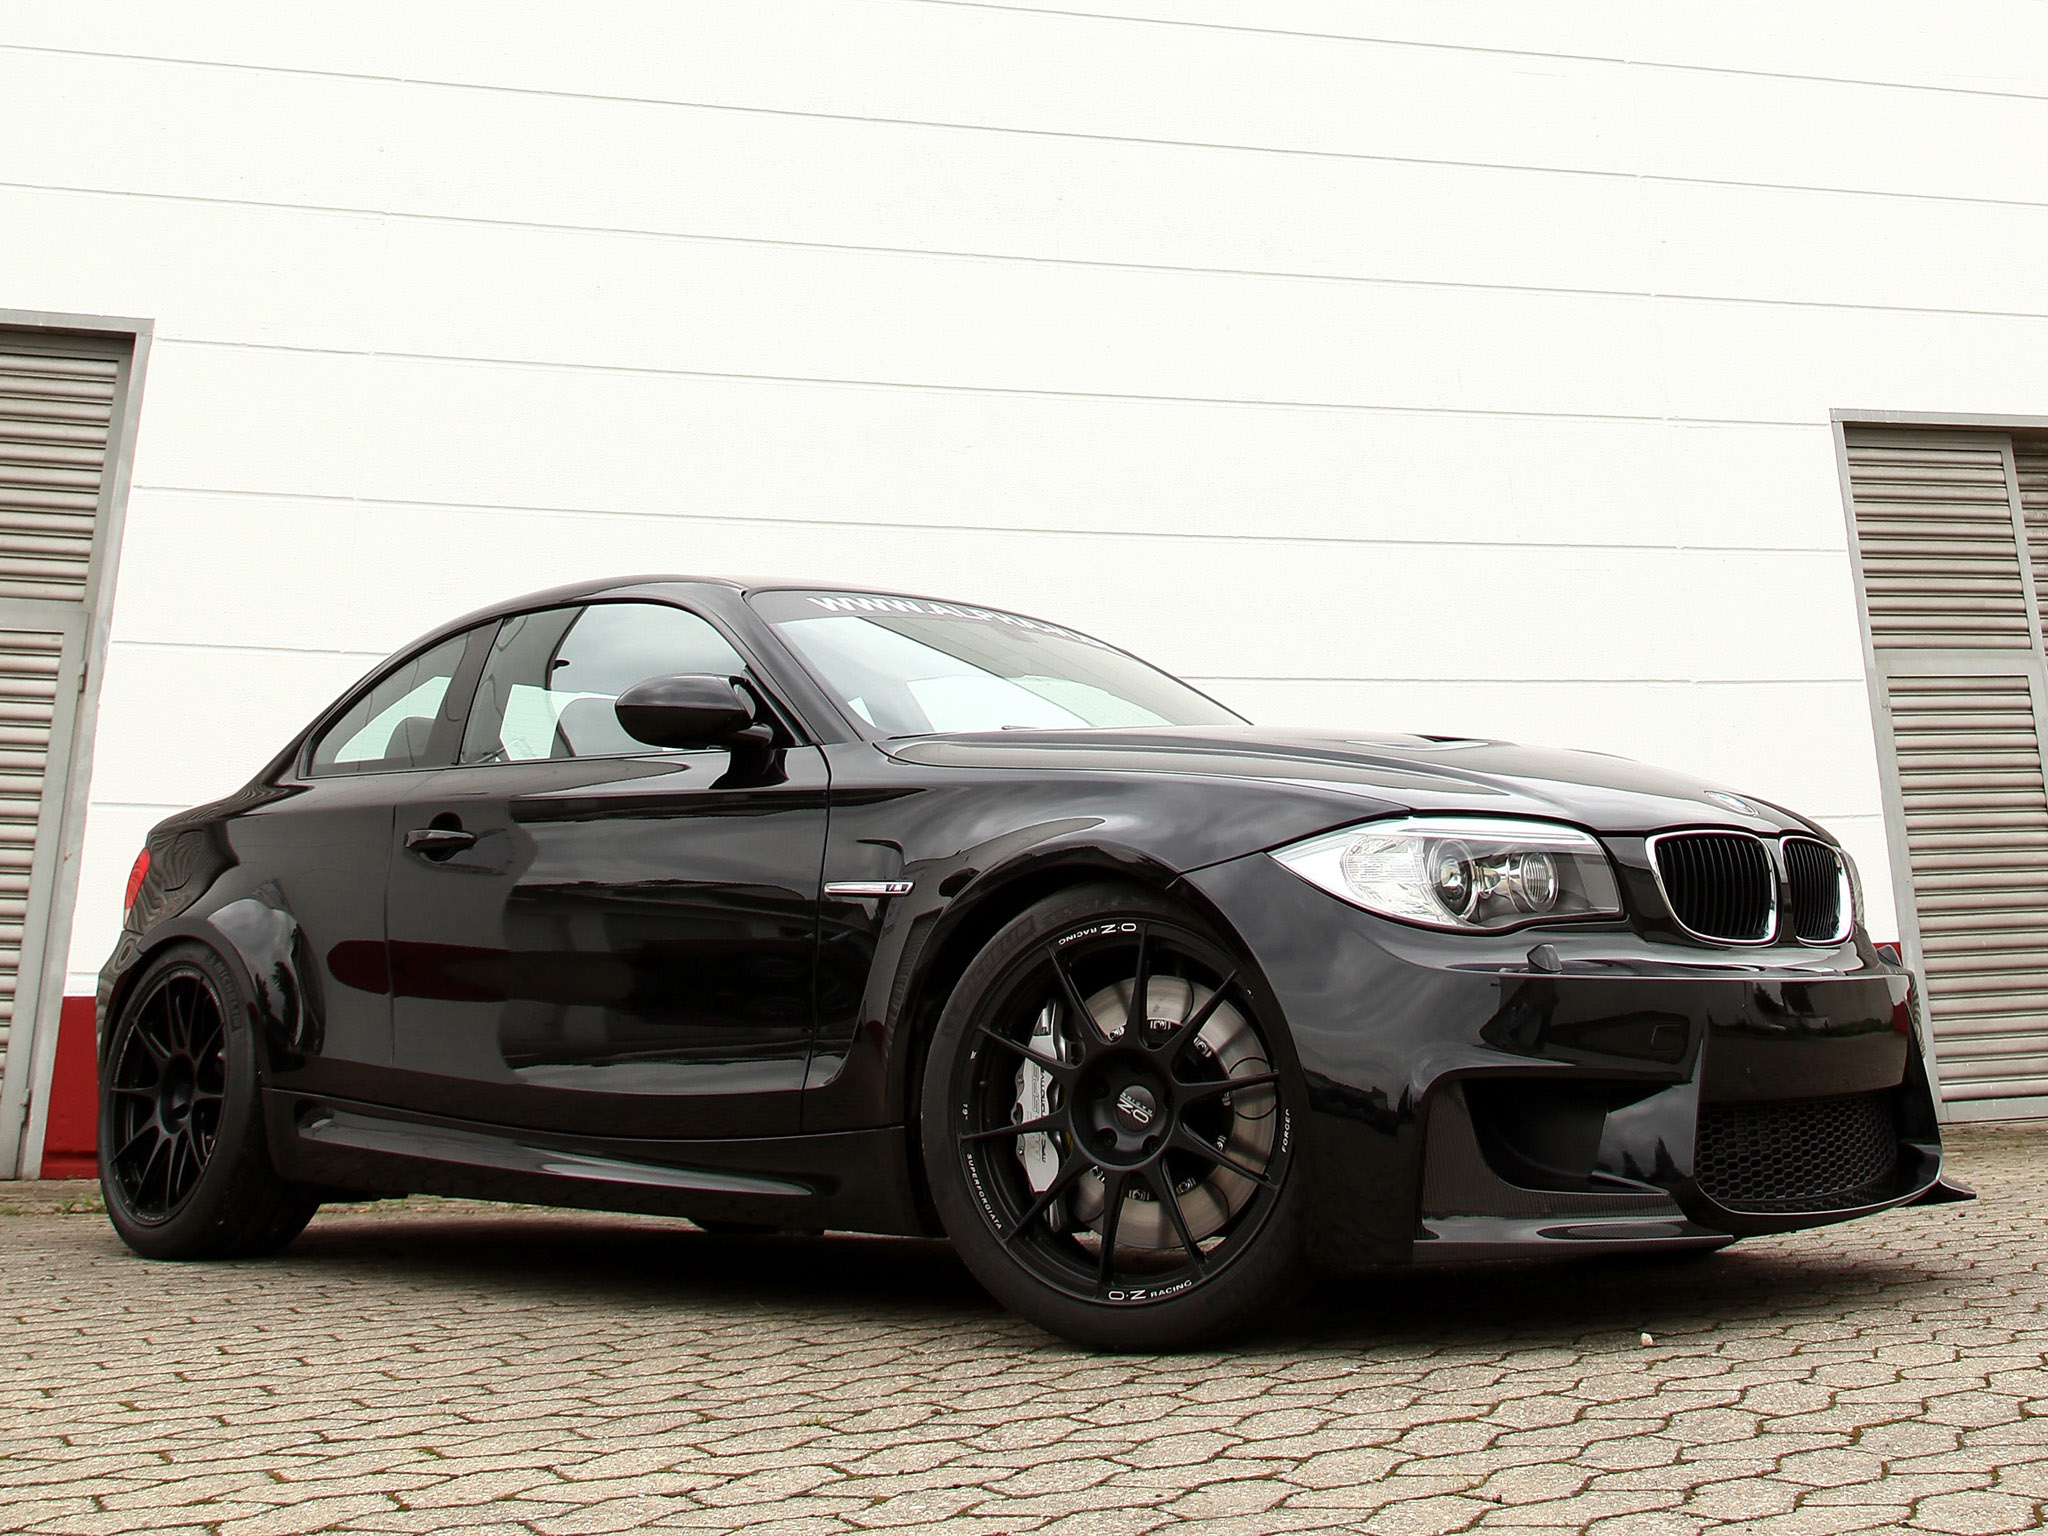 2013 bmw 1er m coupe e82 pictures information and specs auto. Black Bedroom Furniture Sets. Home Design Ideas